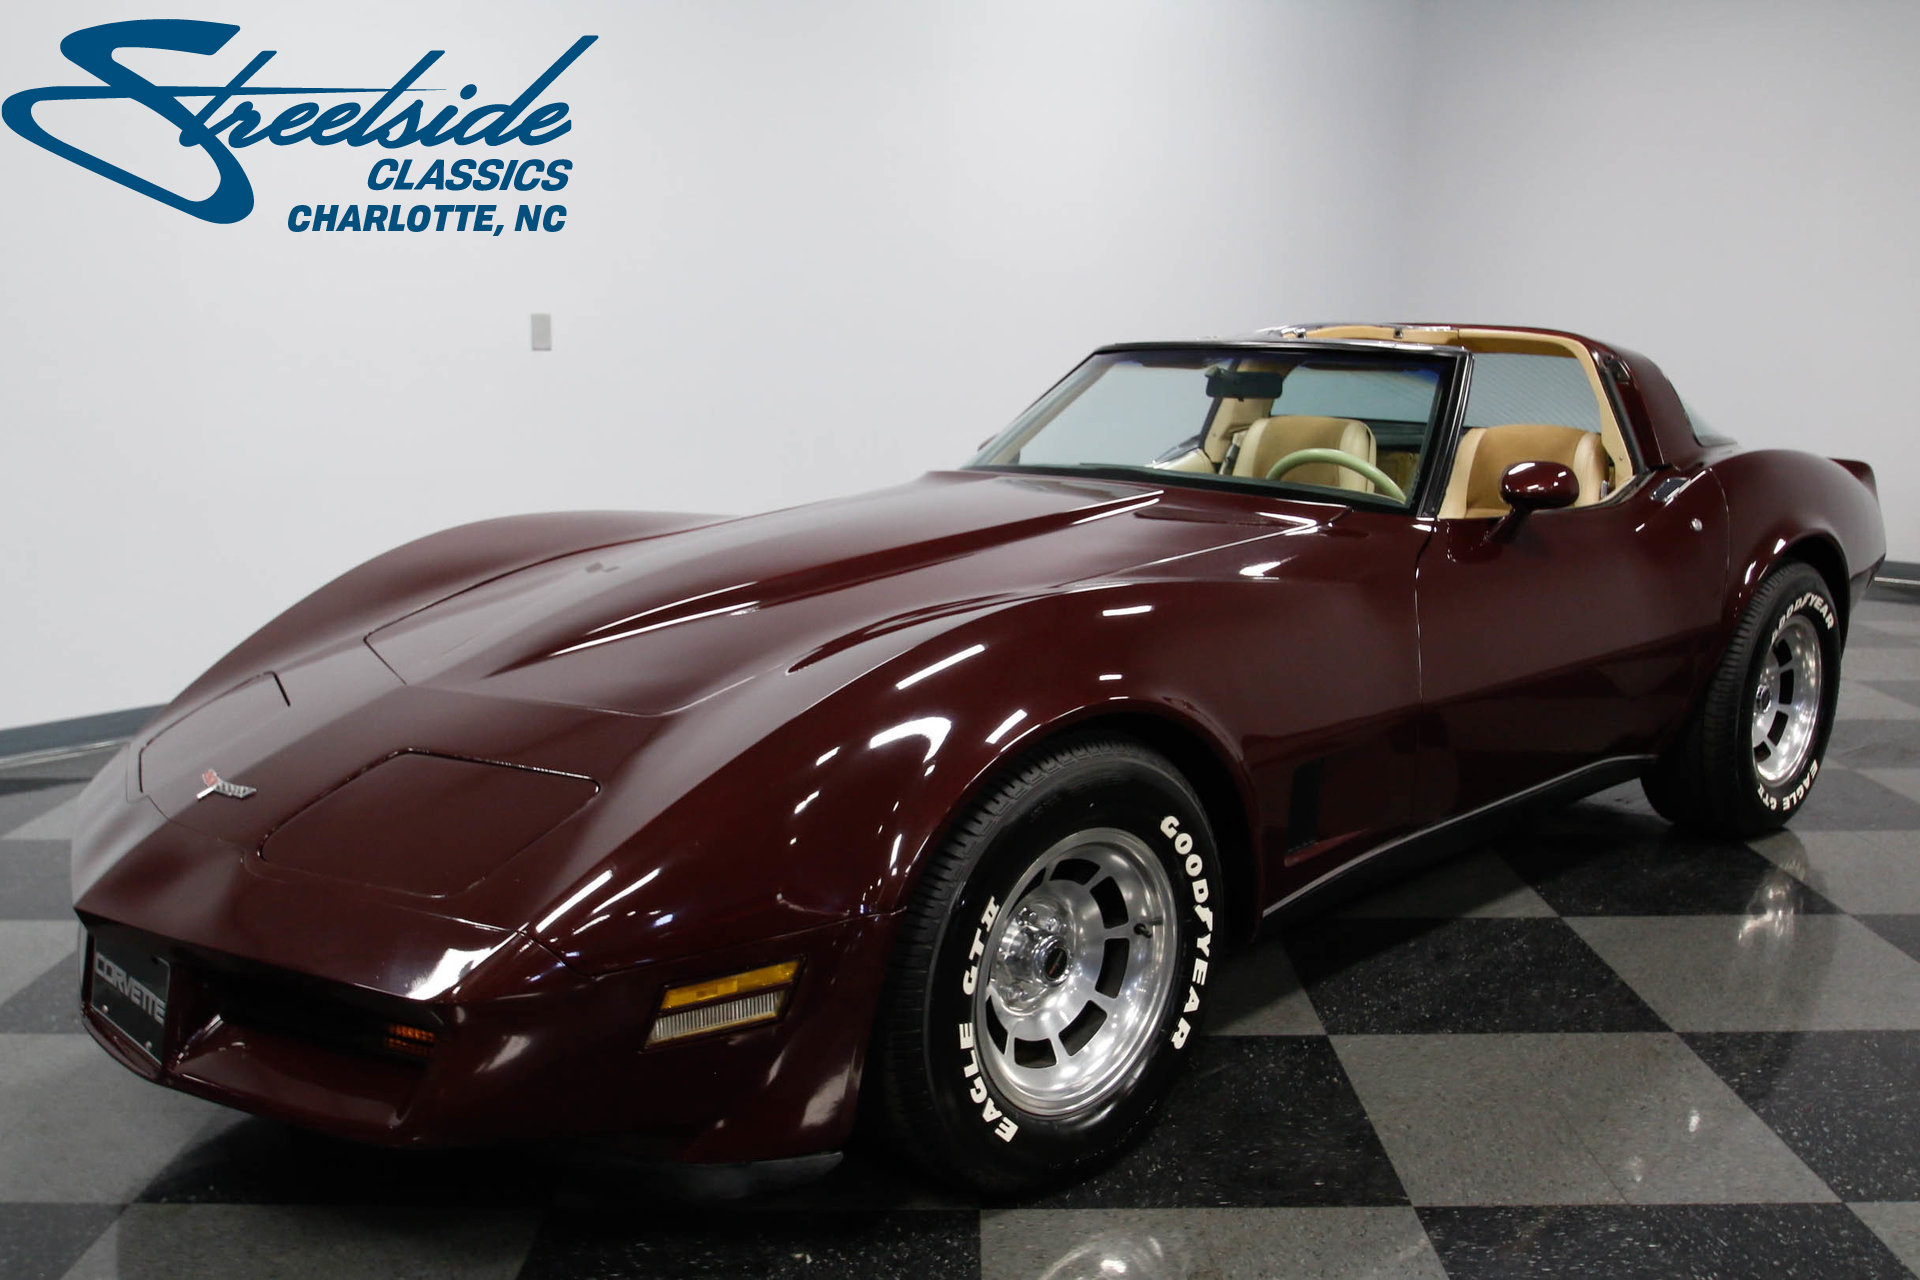 1980 chevrolet corvette streetside classics the nation s trusted classic car consignment dealer Stick Shift Knobs 5 Speed Cars